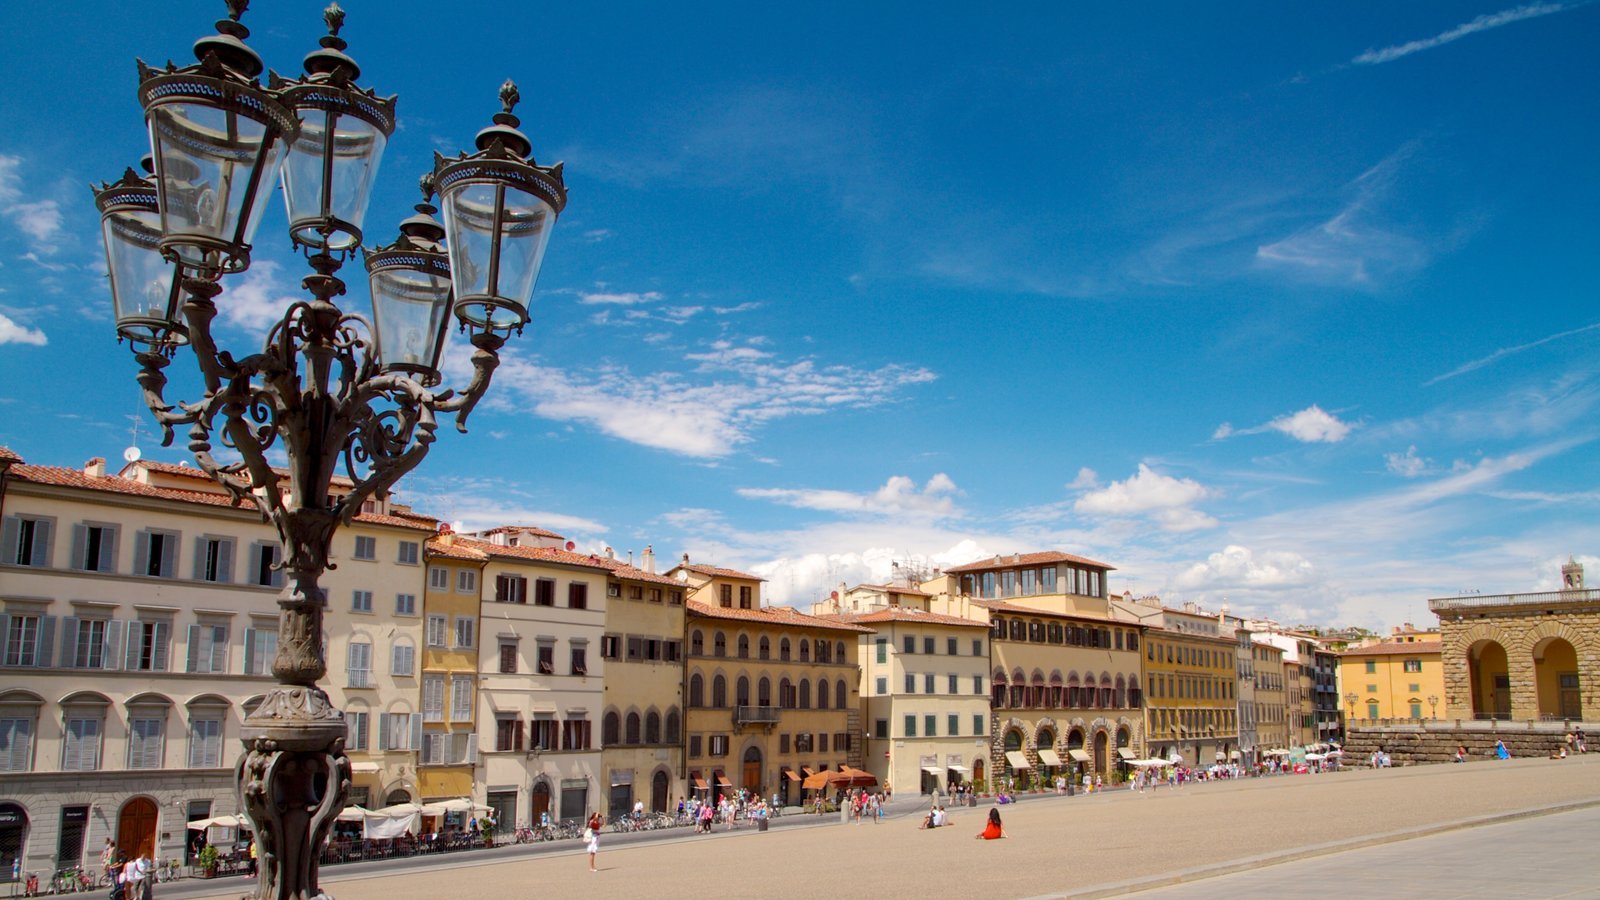 Pitti Palace featuring skyline, heritage architecture and street scenes